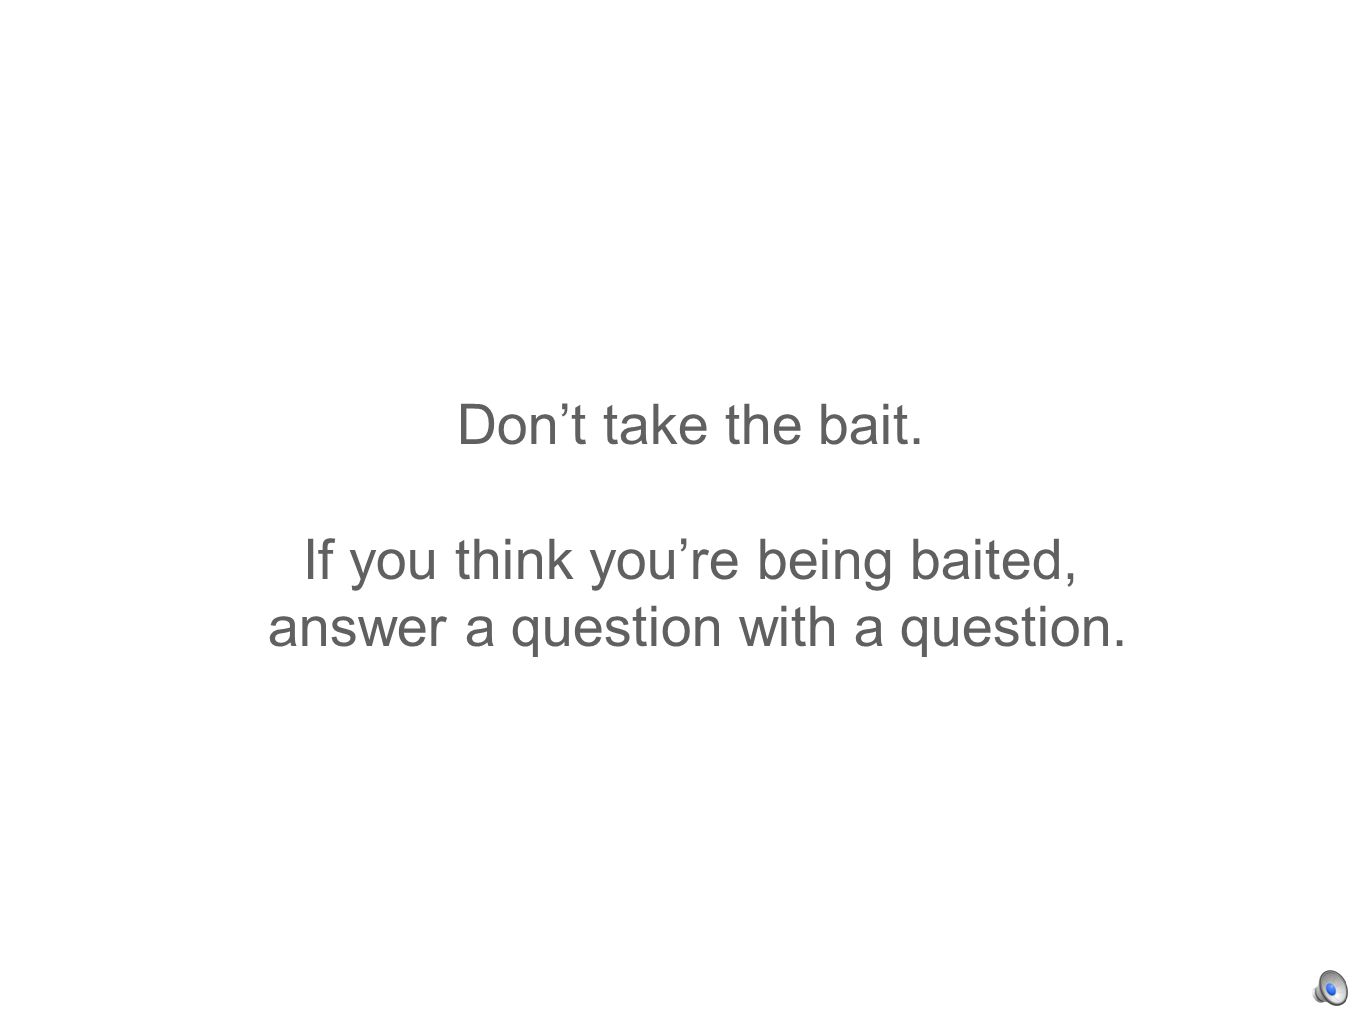 Dont take the bait. If you think youre being baited, answer a question with a question.